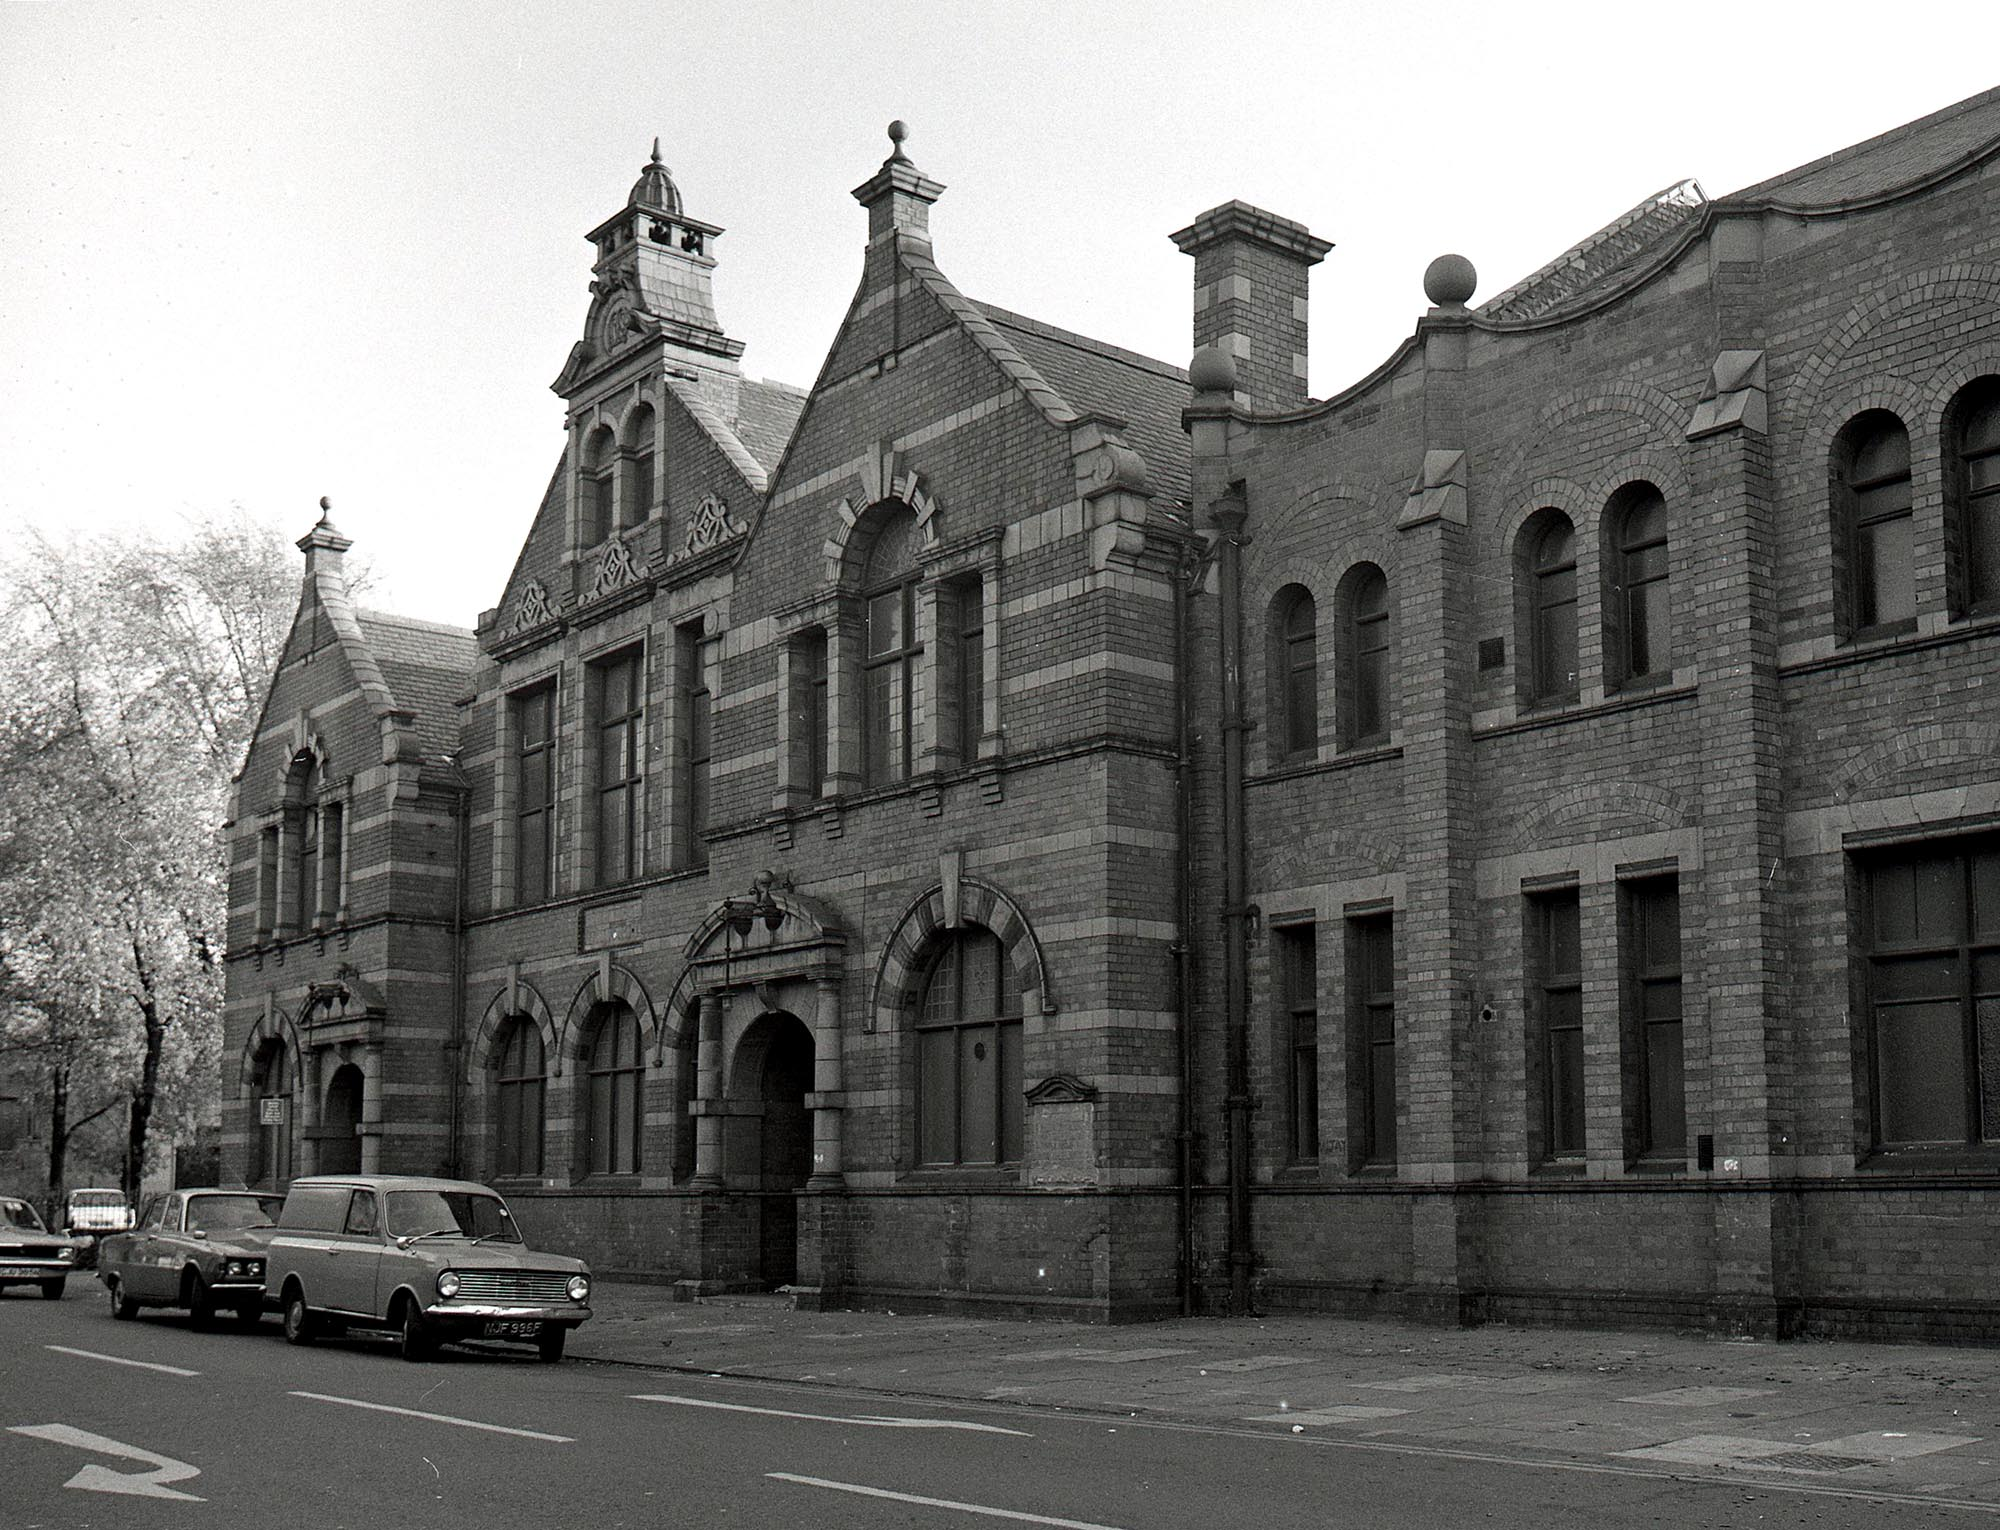 The exterior of Mantle Memorial School in 1975, after it closed -